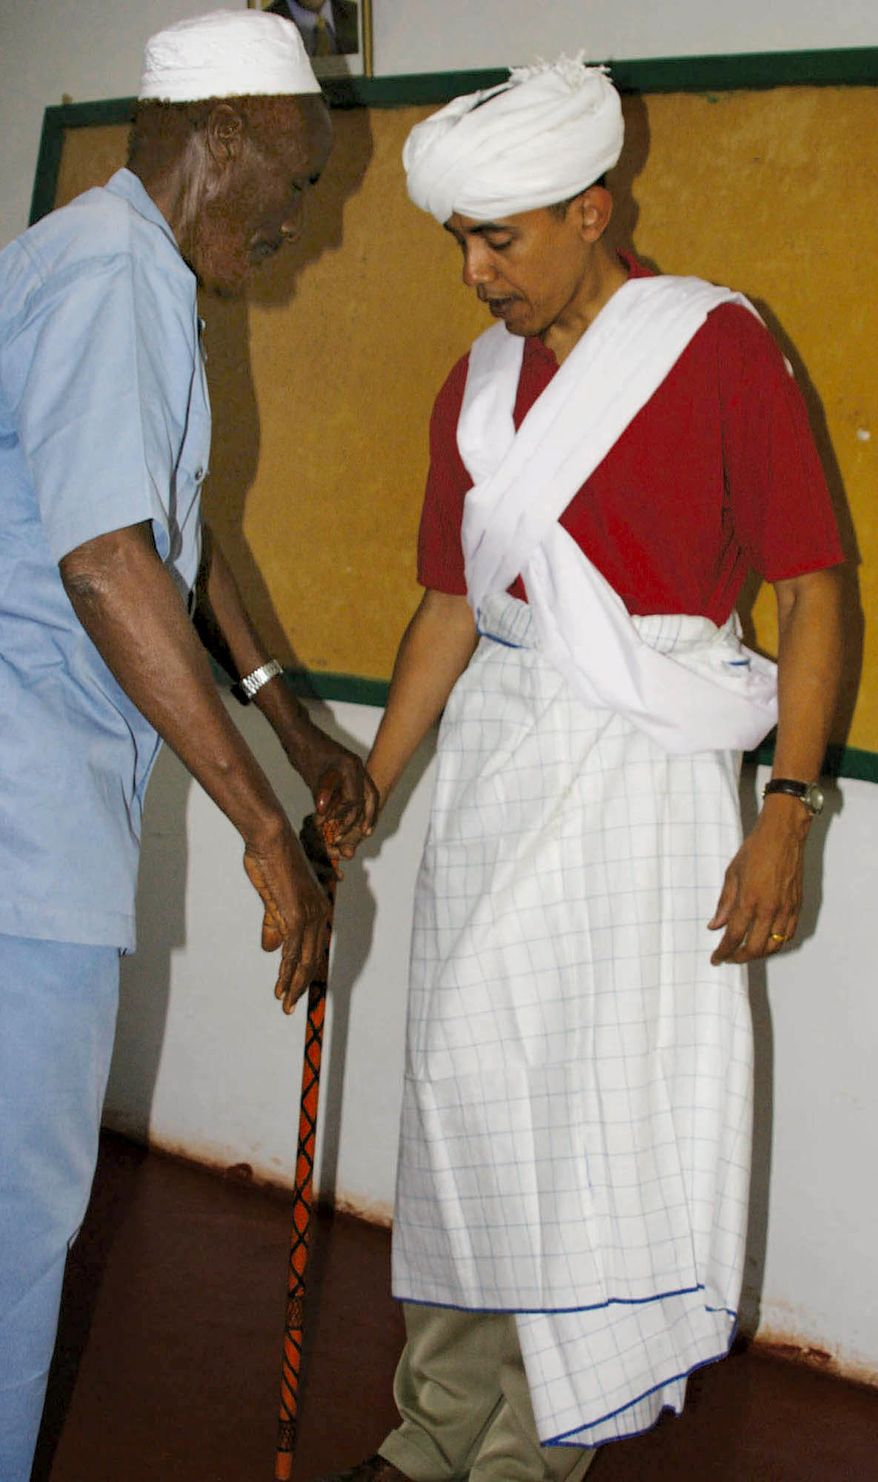 **FILE** Then-Sen. Barack Obama (right) is dressed as a Somali Elder by Sheikh Mahmed Hassan during his visit in 2006 to Wajir, a rural area in northeastern Kenya, near the borders with Somalia and Ethiopia. (Associated Press)